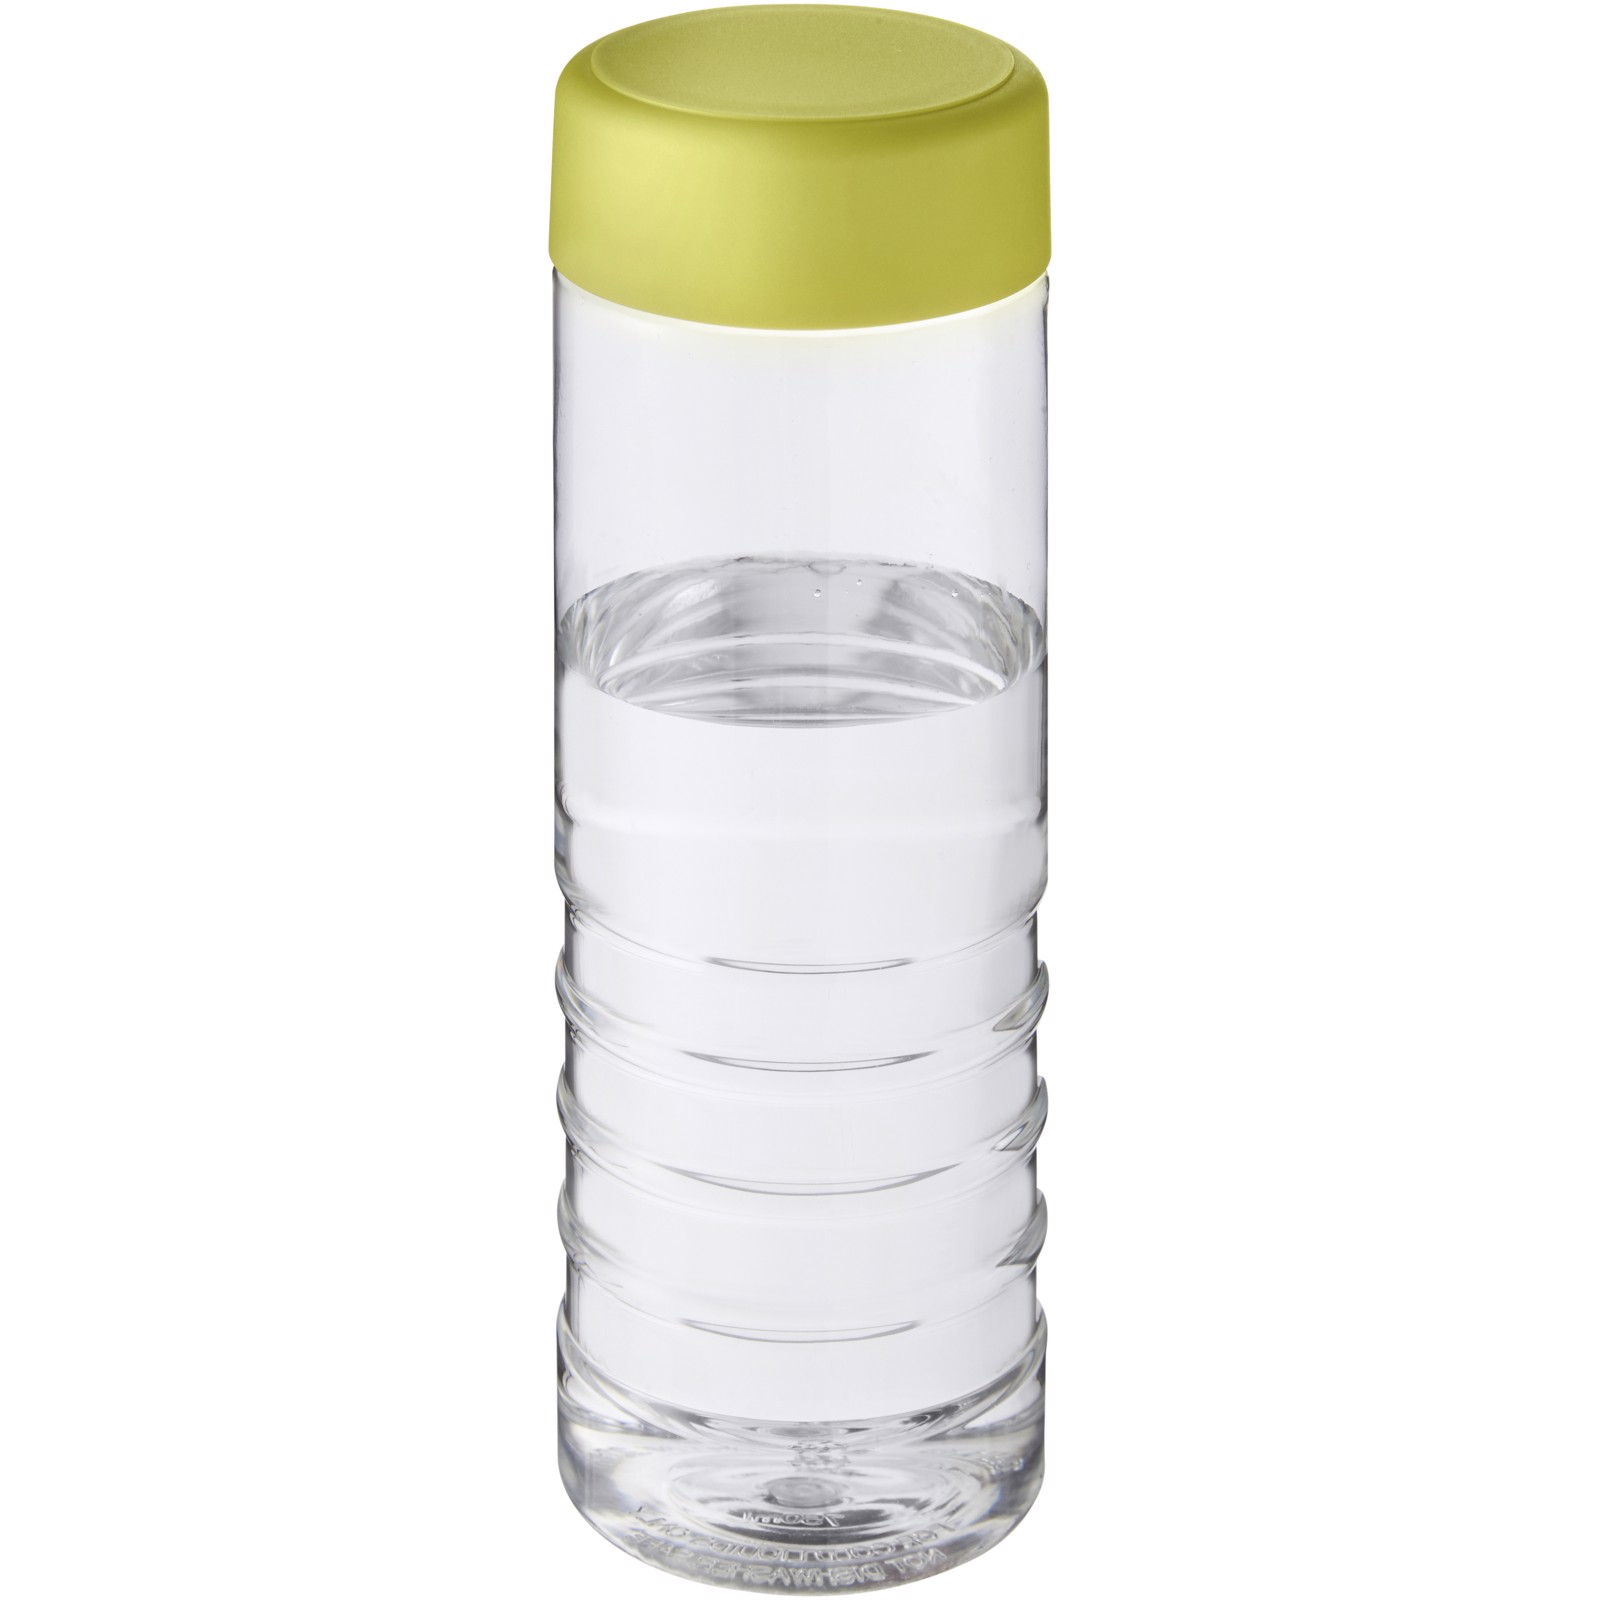 H2O Treble 750 ml screw cap water bottle - Transparent / Lime